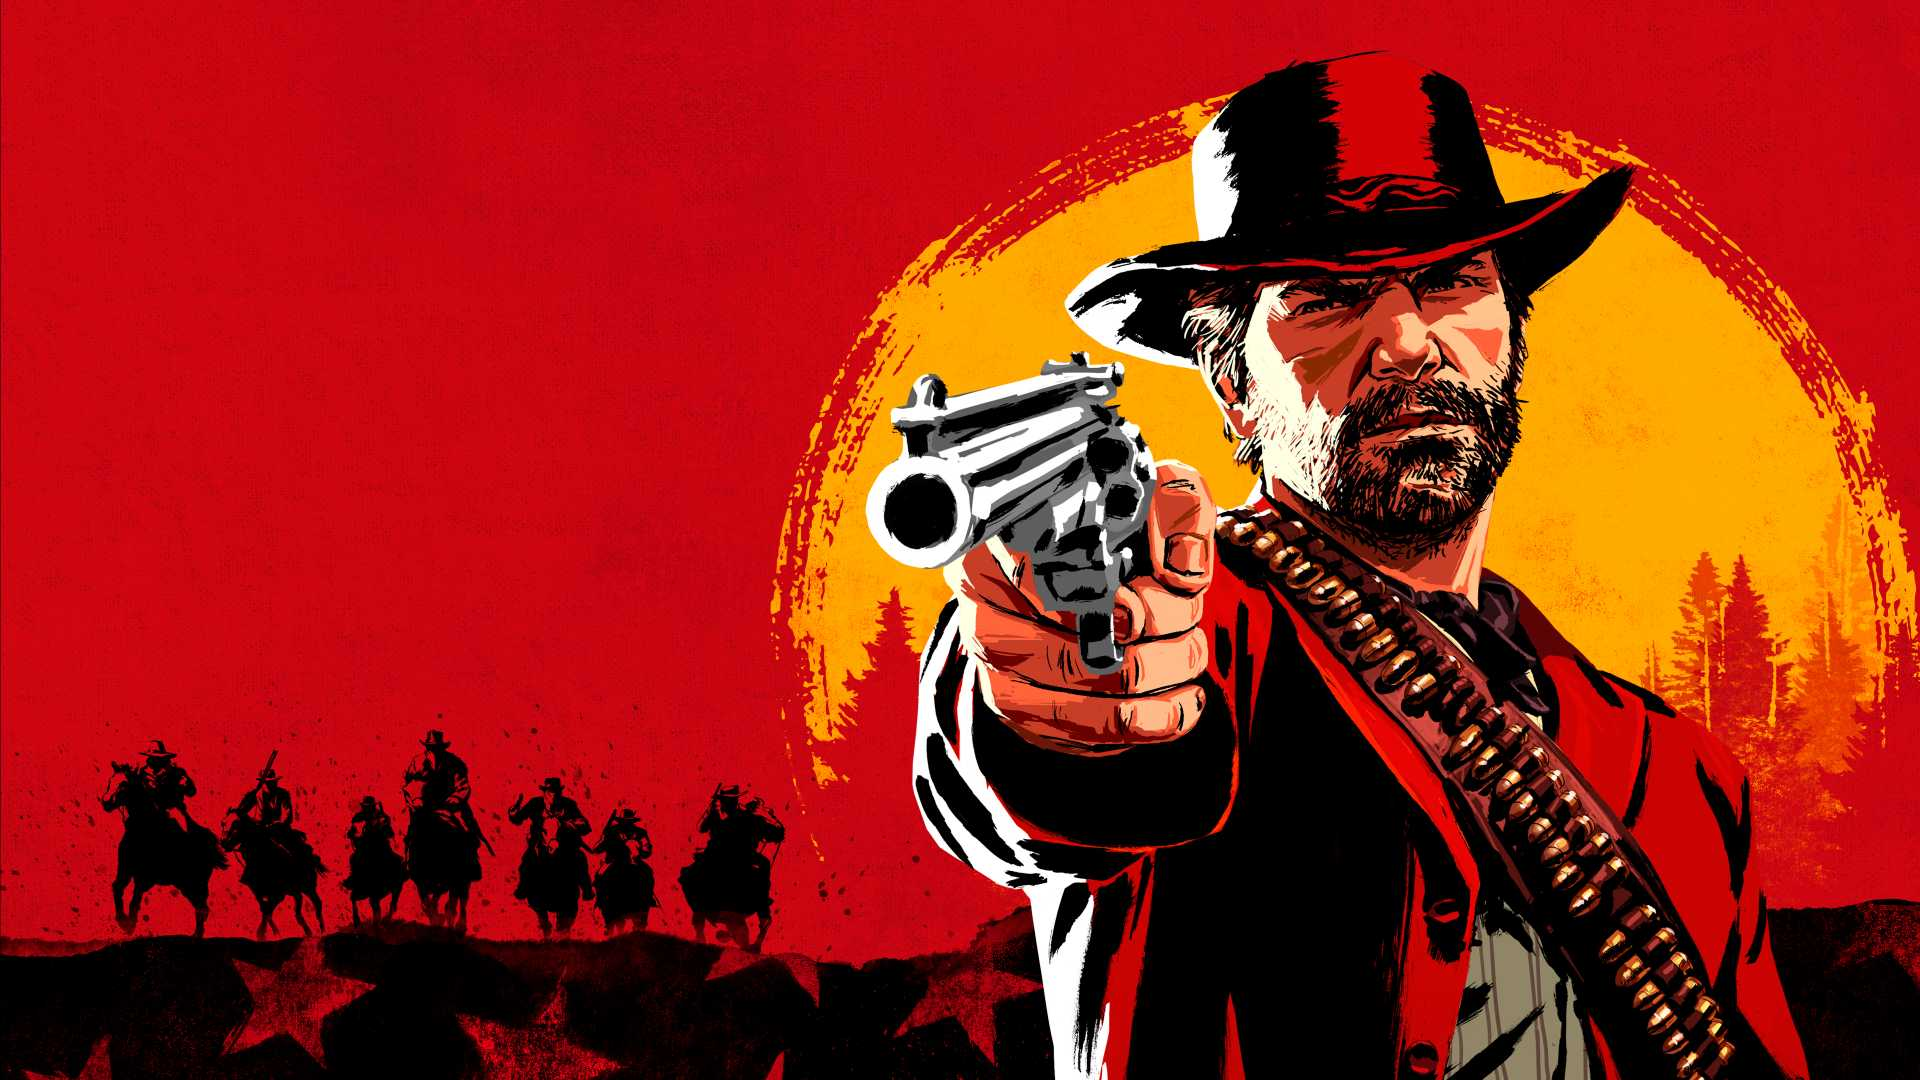 Pre-order Red Dead Redemption 2 for 25 EURO